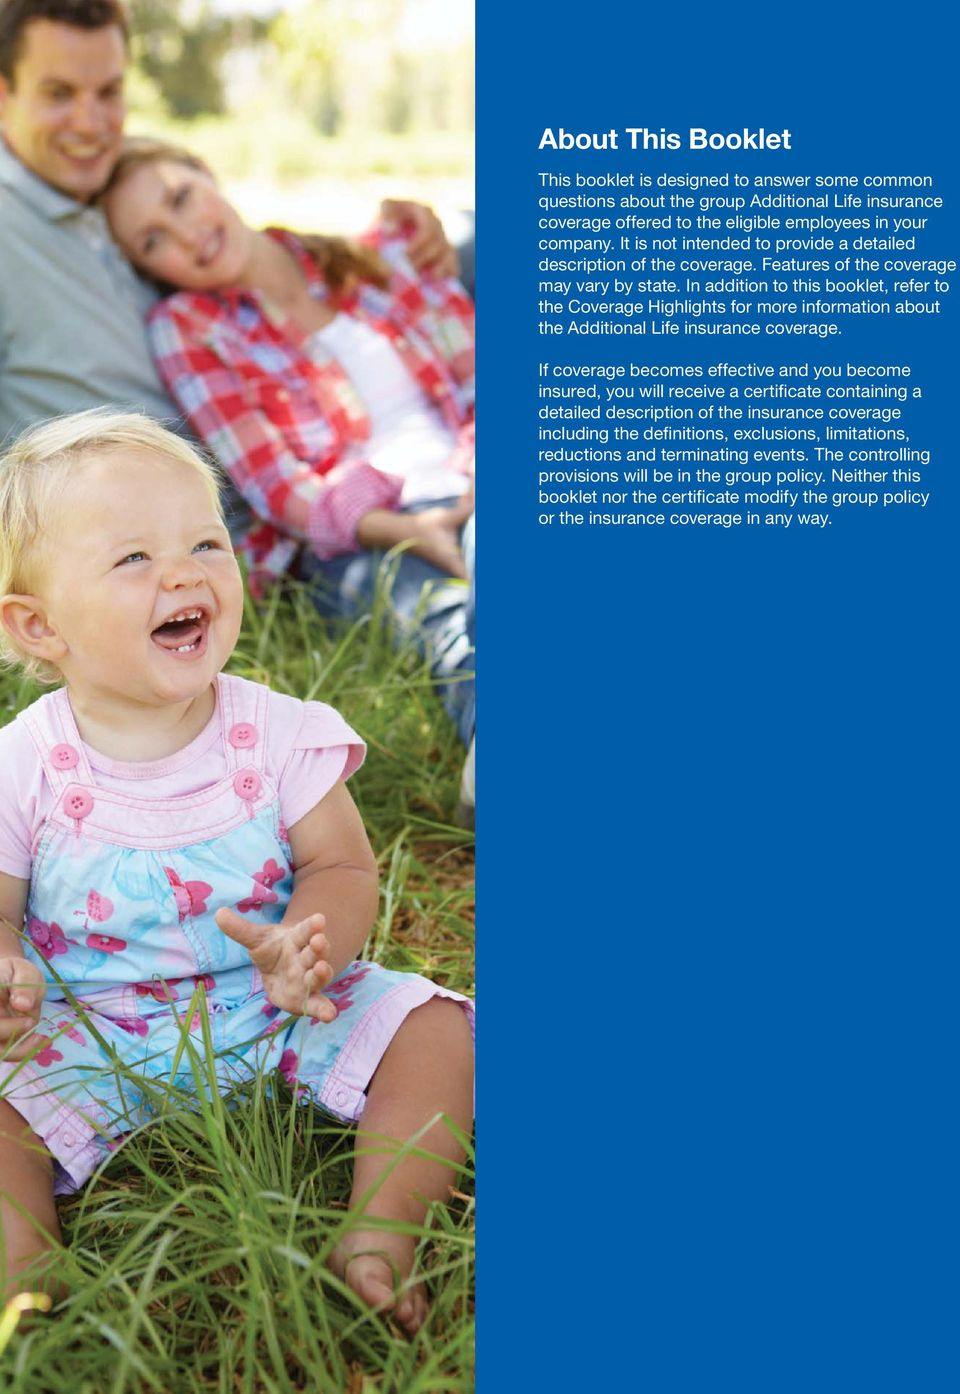 In addition to this booklet, refer to the Coverage Highlights for more information about the Additional Life insurance coverage.